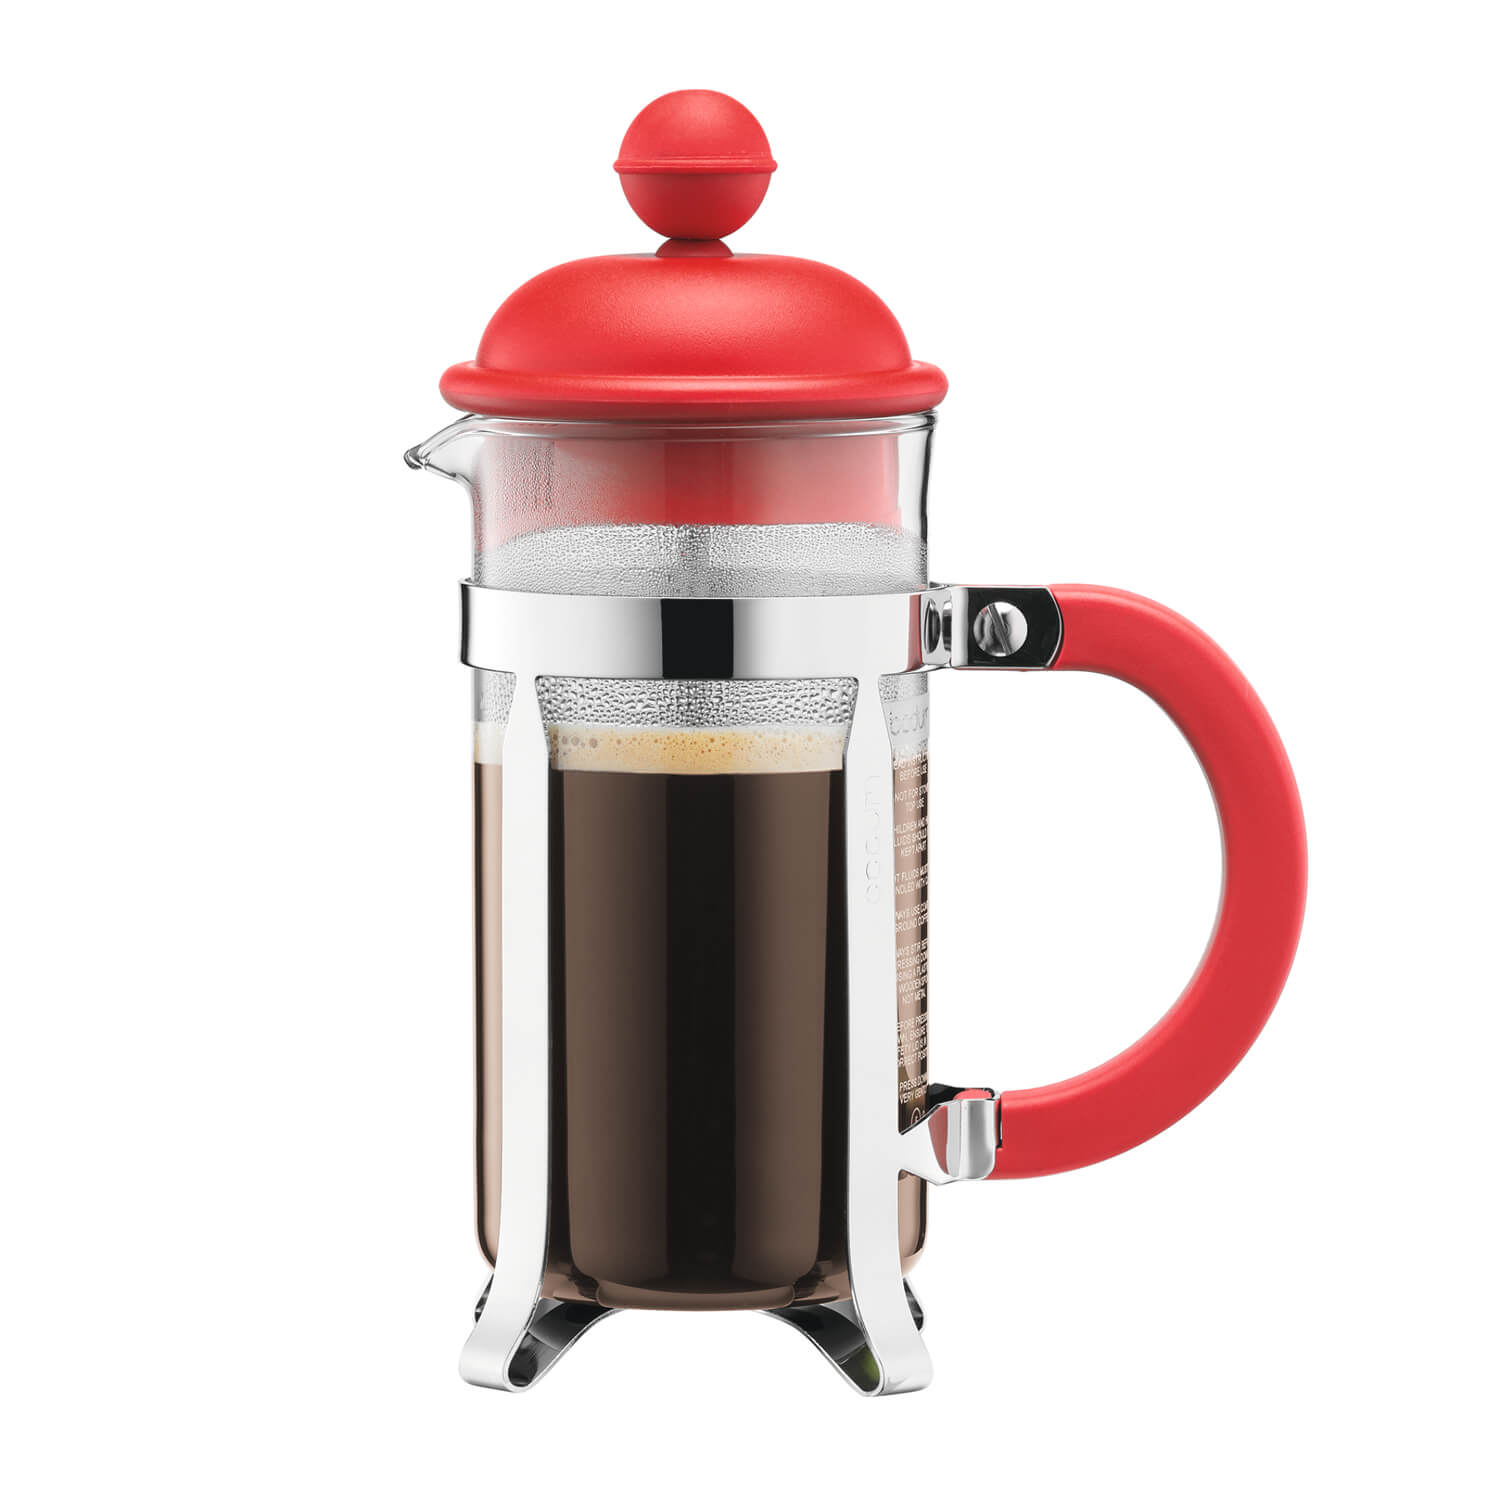 Image of Bodum Caffettiera Coffeemaker 3-cup, Red